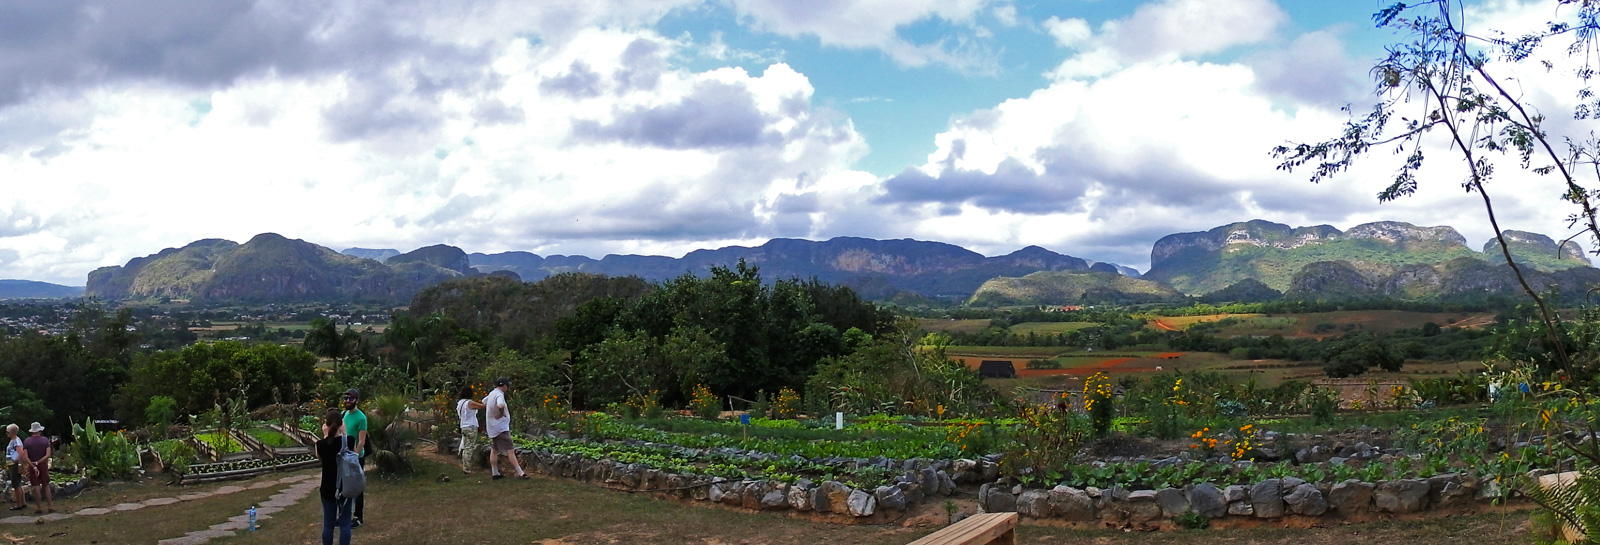 One awesome reason to backpack Vinales. A view of Vinales looking out over the fields and mountains